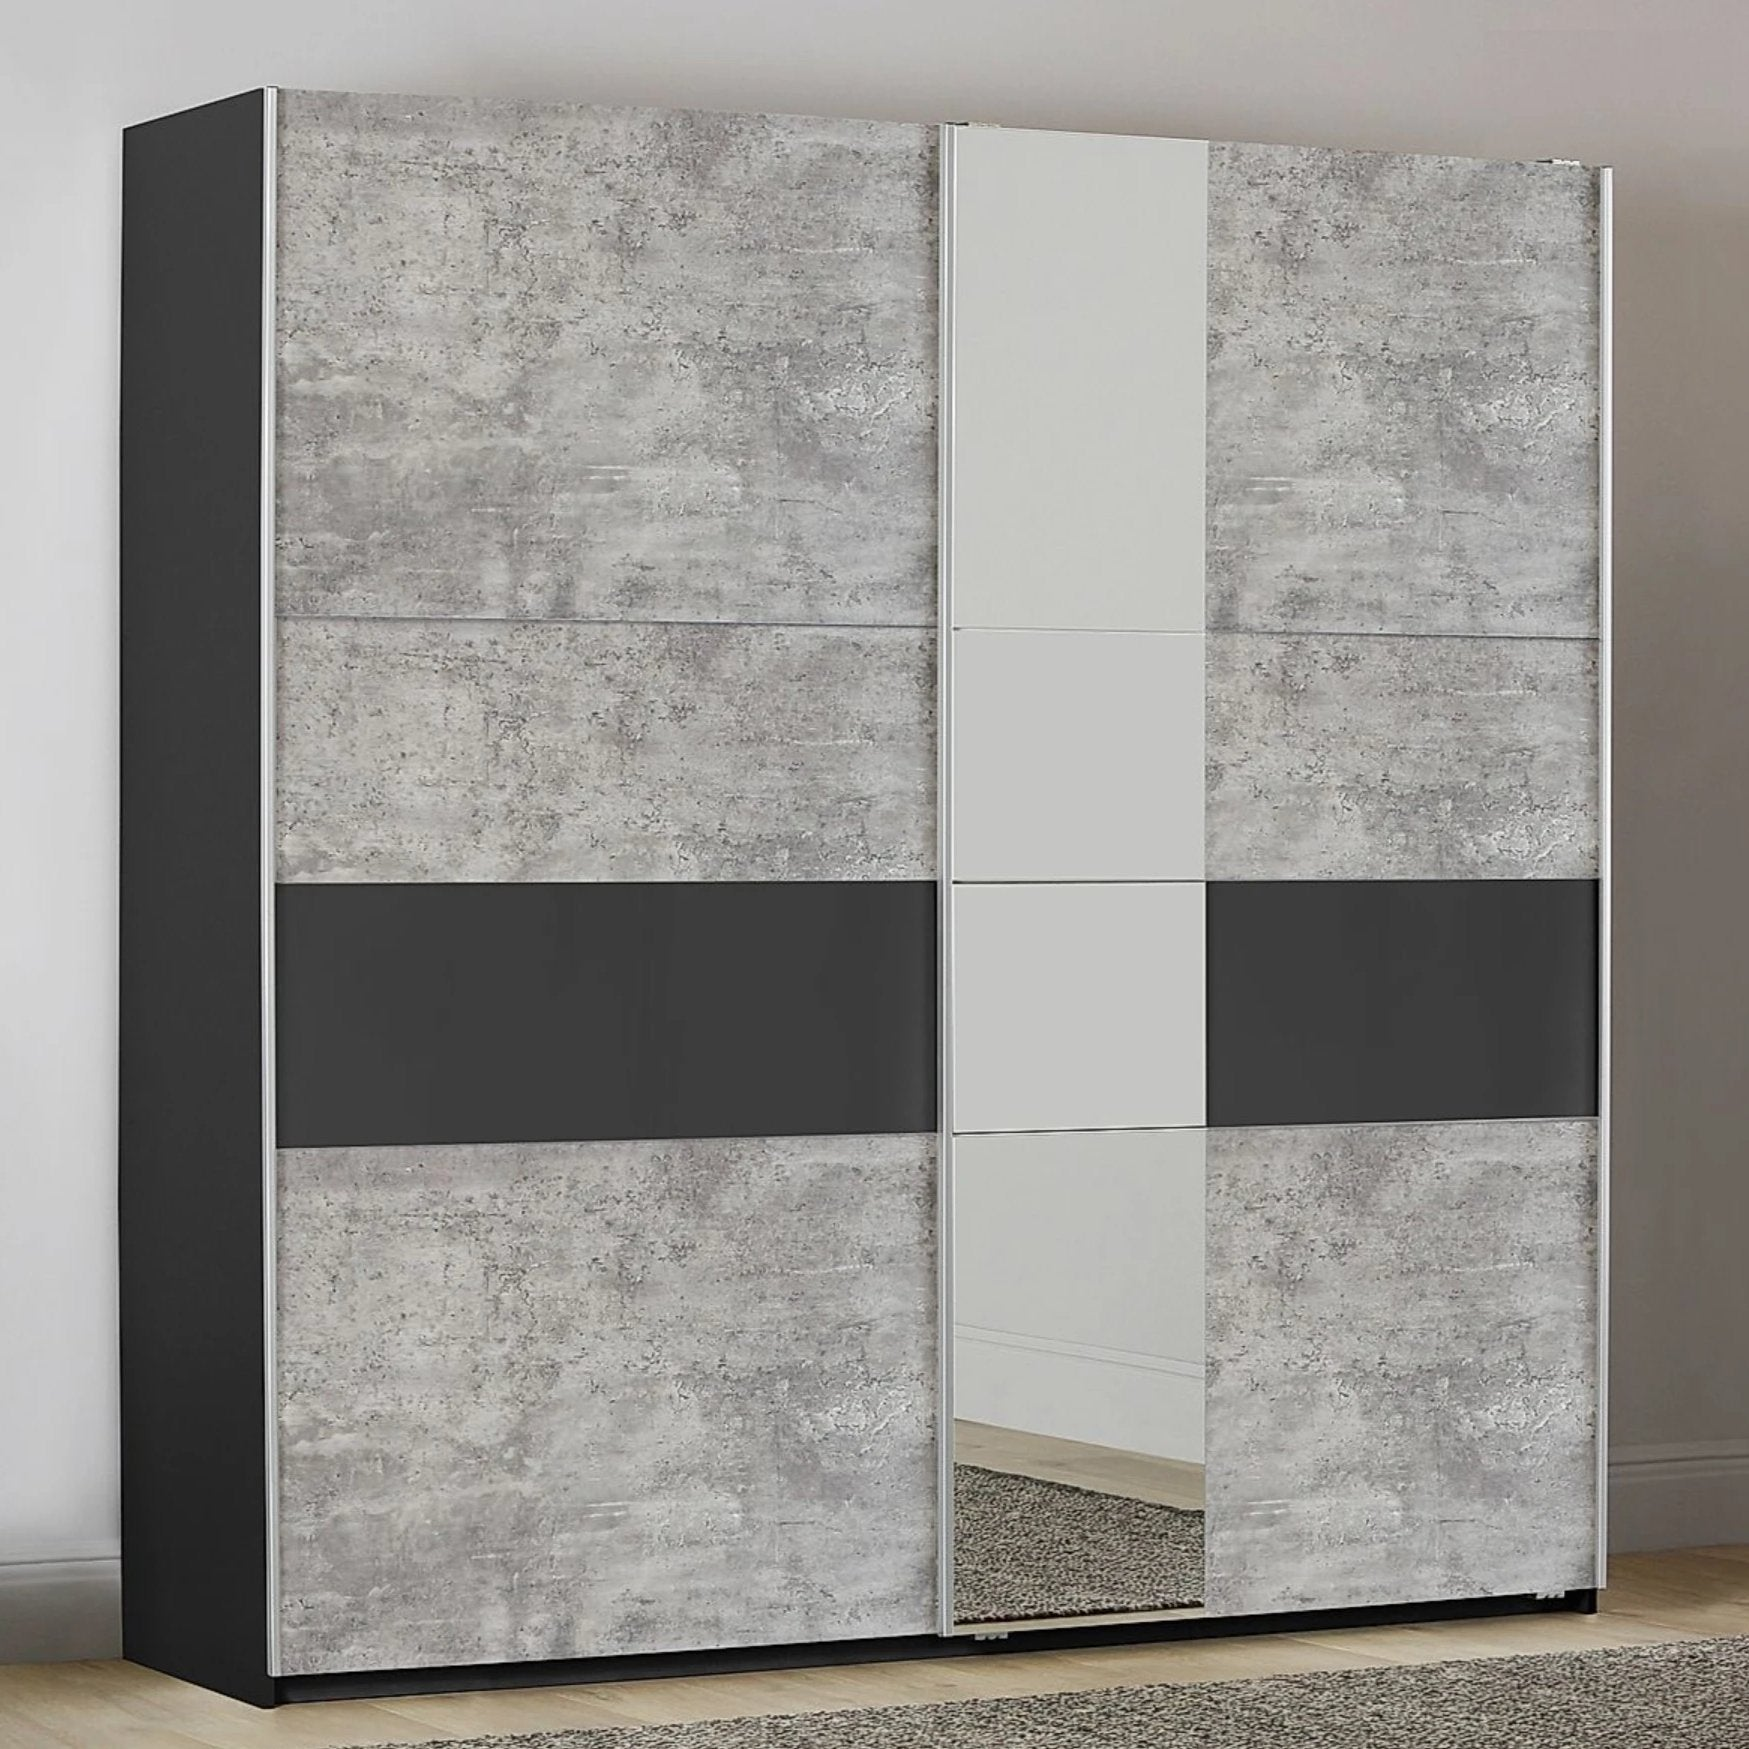 Korbach 2 Door Sliding Wardrobe